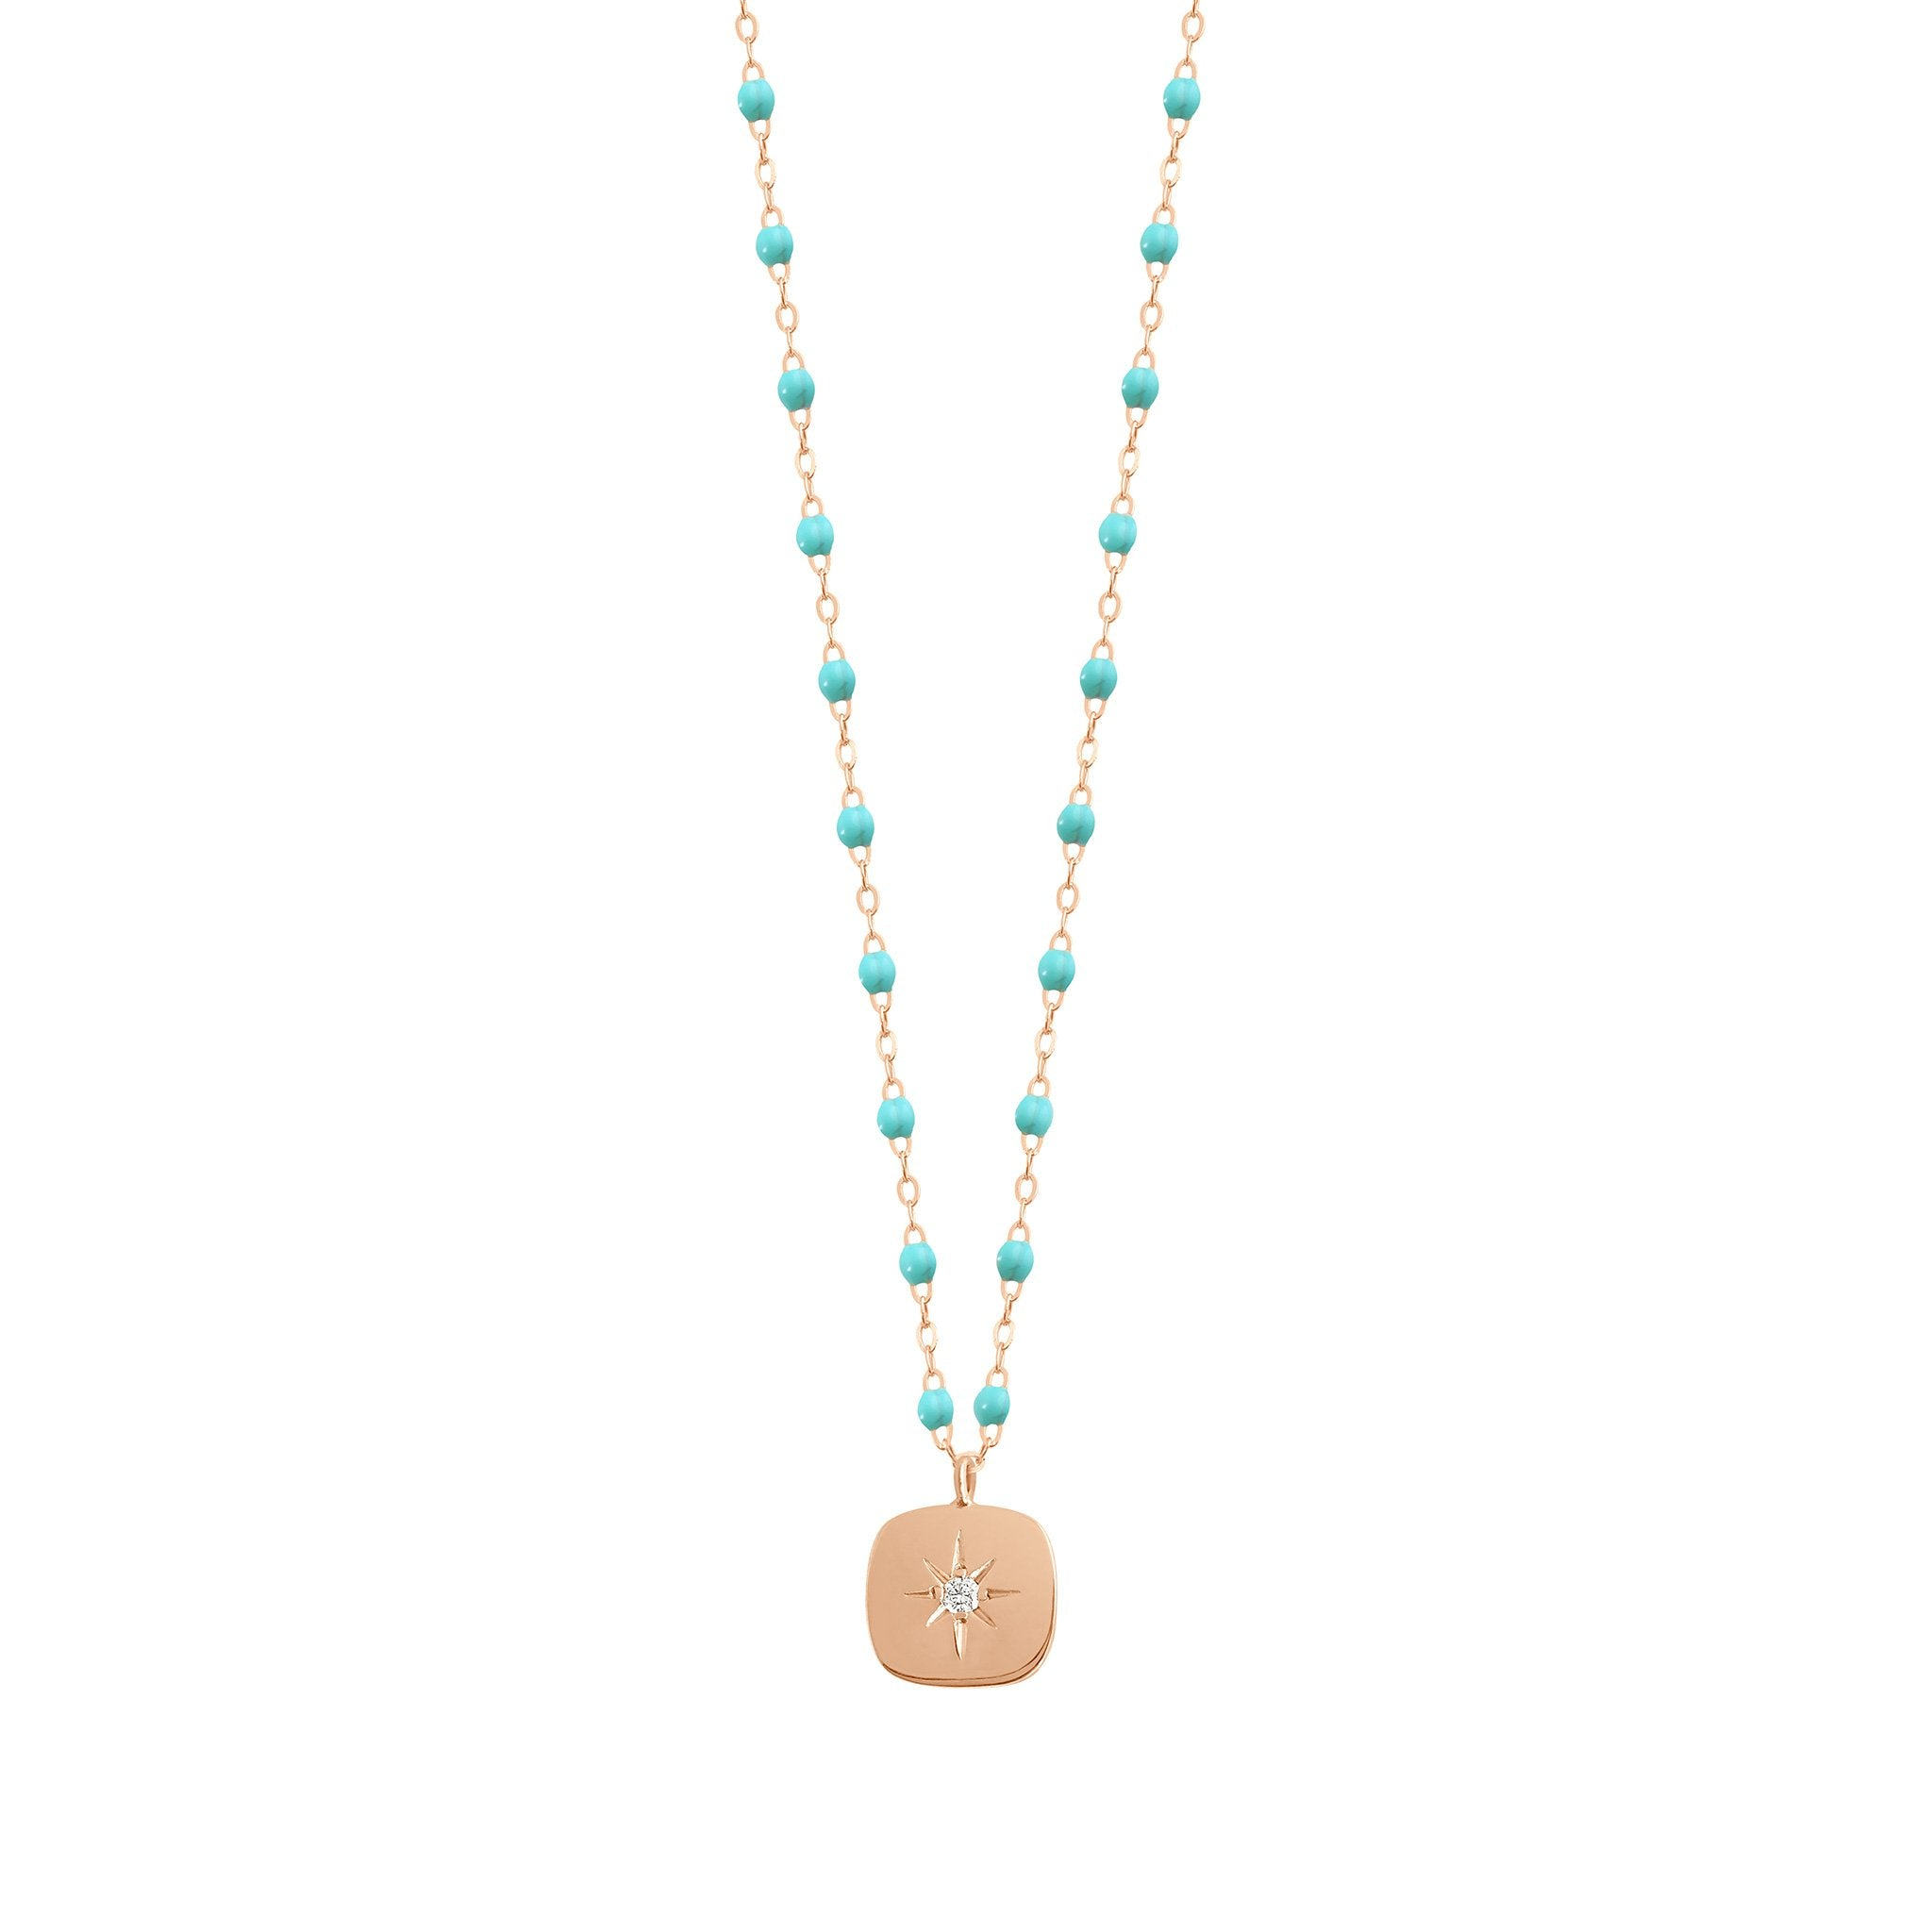 Gigi Clozeau - Miss Gigi Turquoise Green diamond necklace, Rose Gold, 16.5""